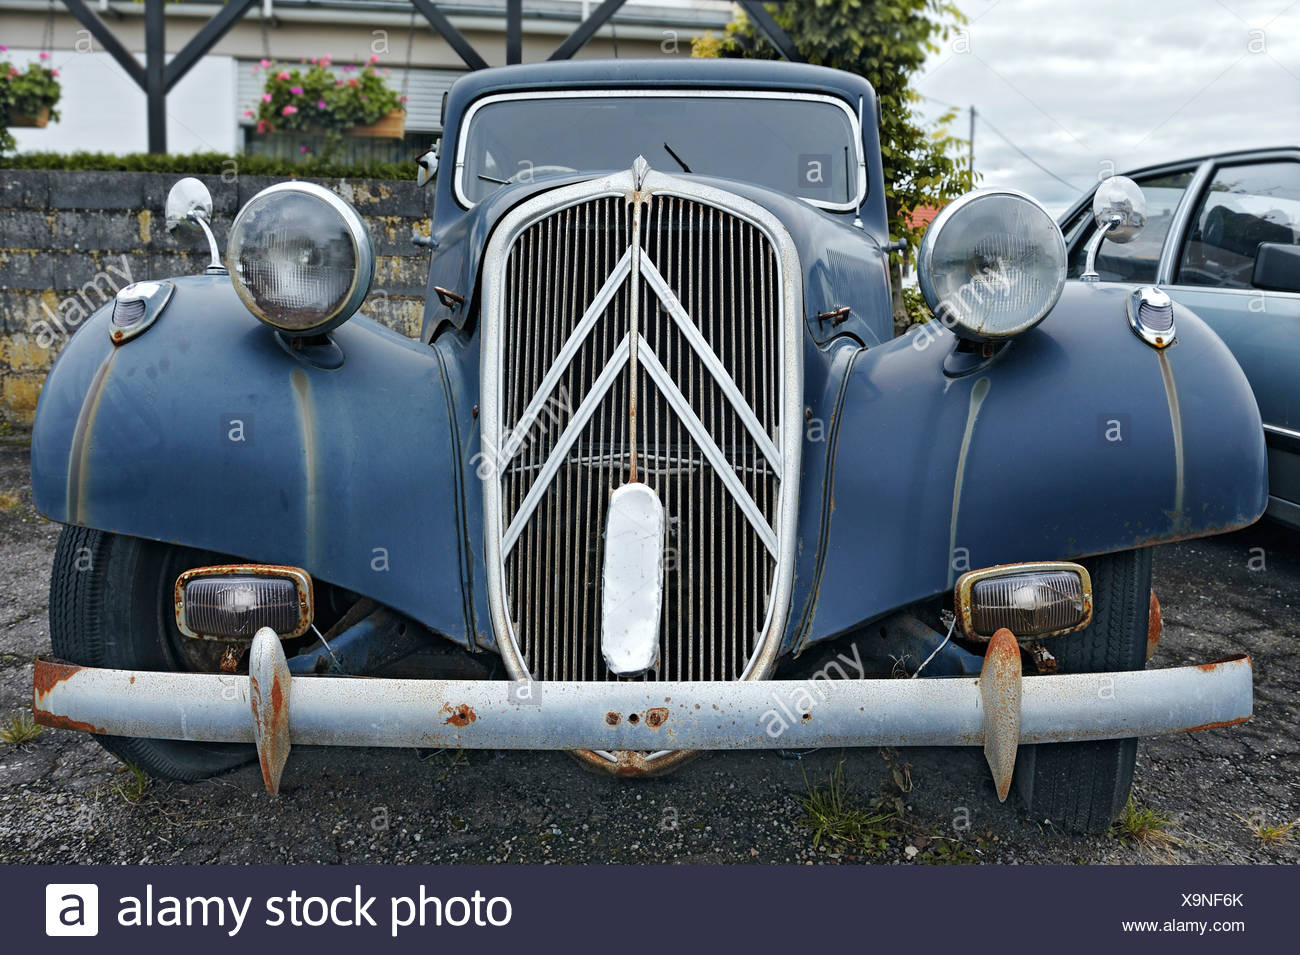 Oldtimer, Citroen-Traction-Avant in Wochern, Saarland, Deutschland, Europa Stockbild